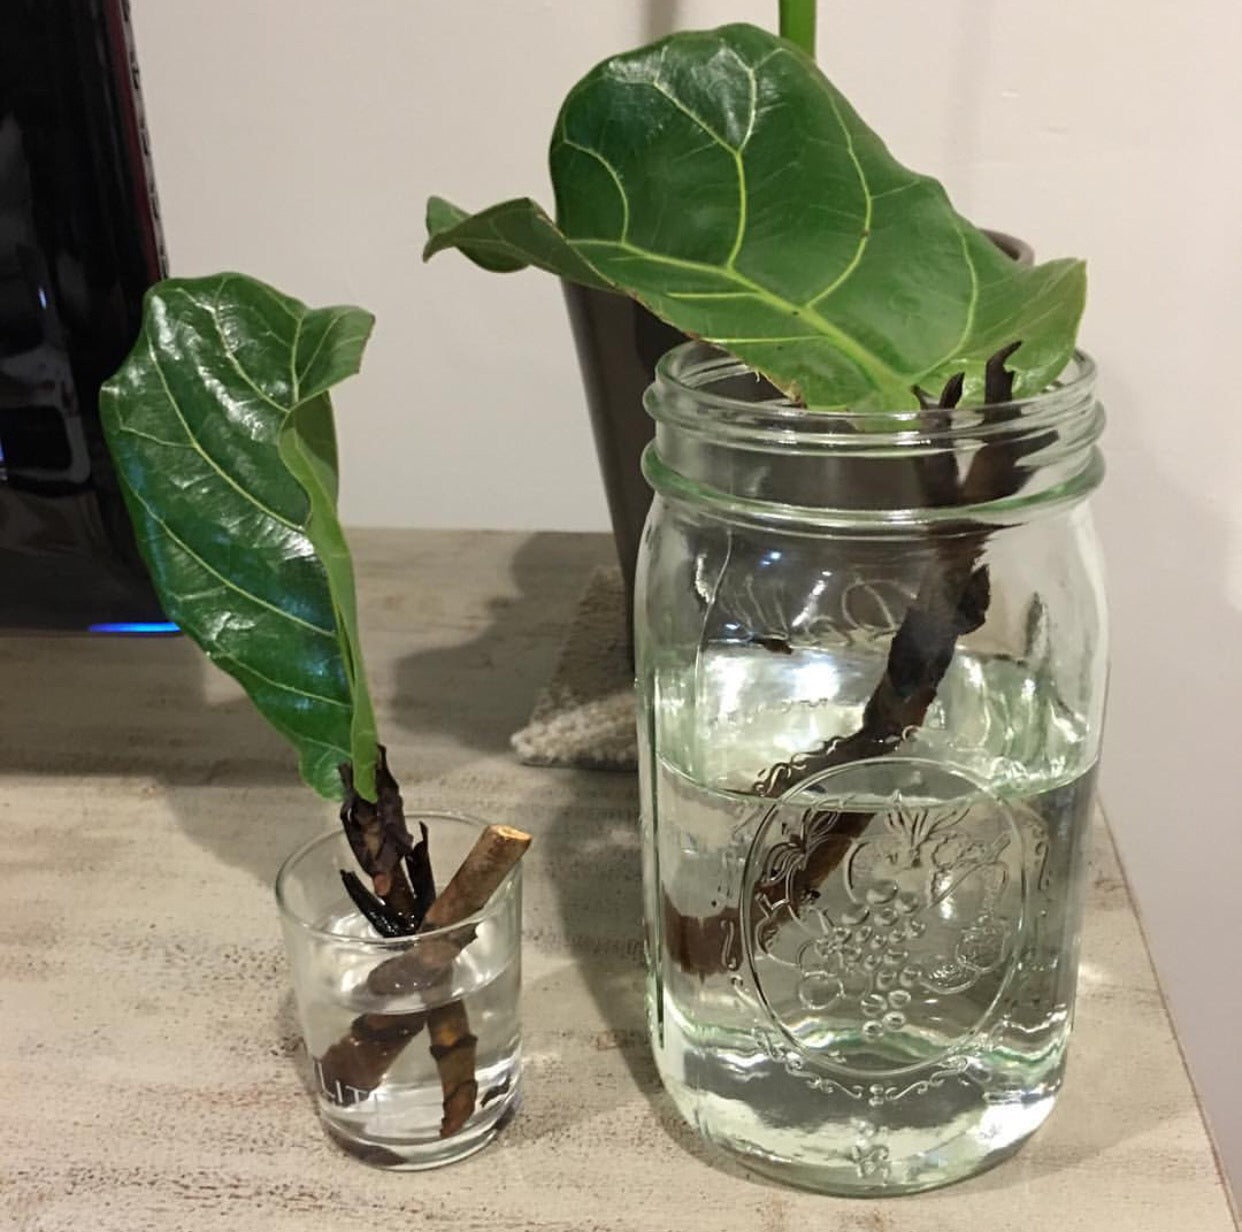 propagating - rooting fiddle leaf fig tree in water - astral riles blog